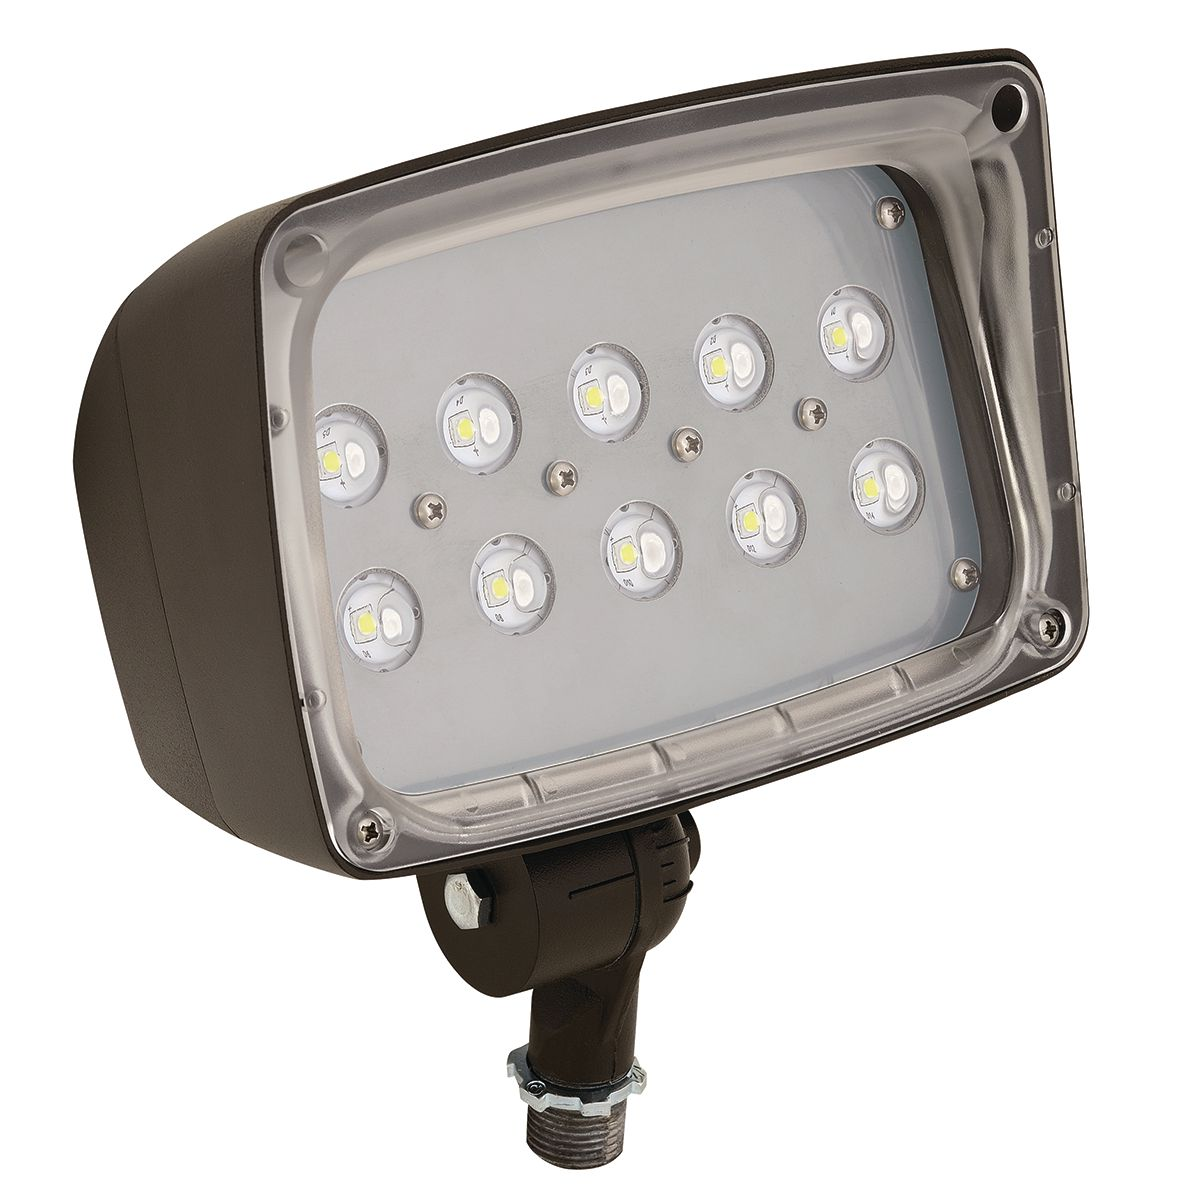 HUB-LT FSL-25 FSL LED Decor flood 2